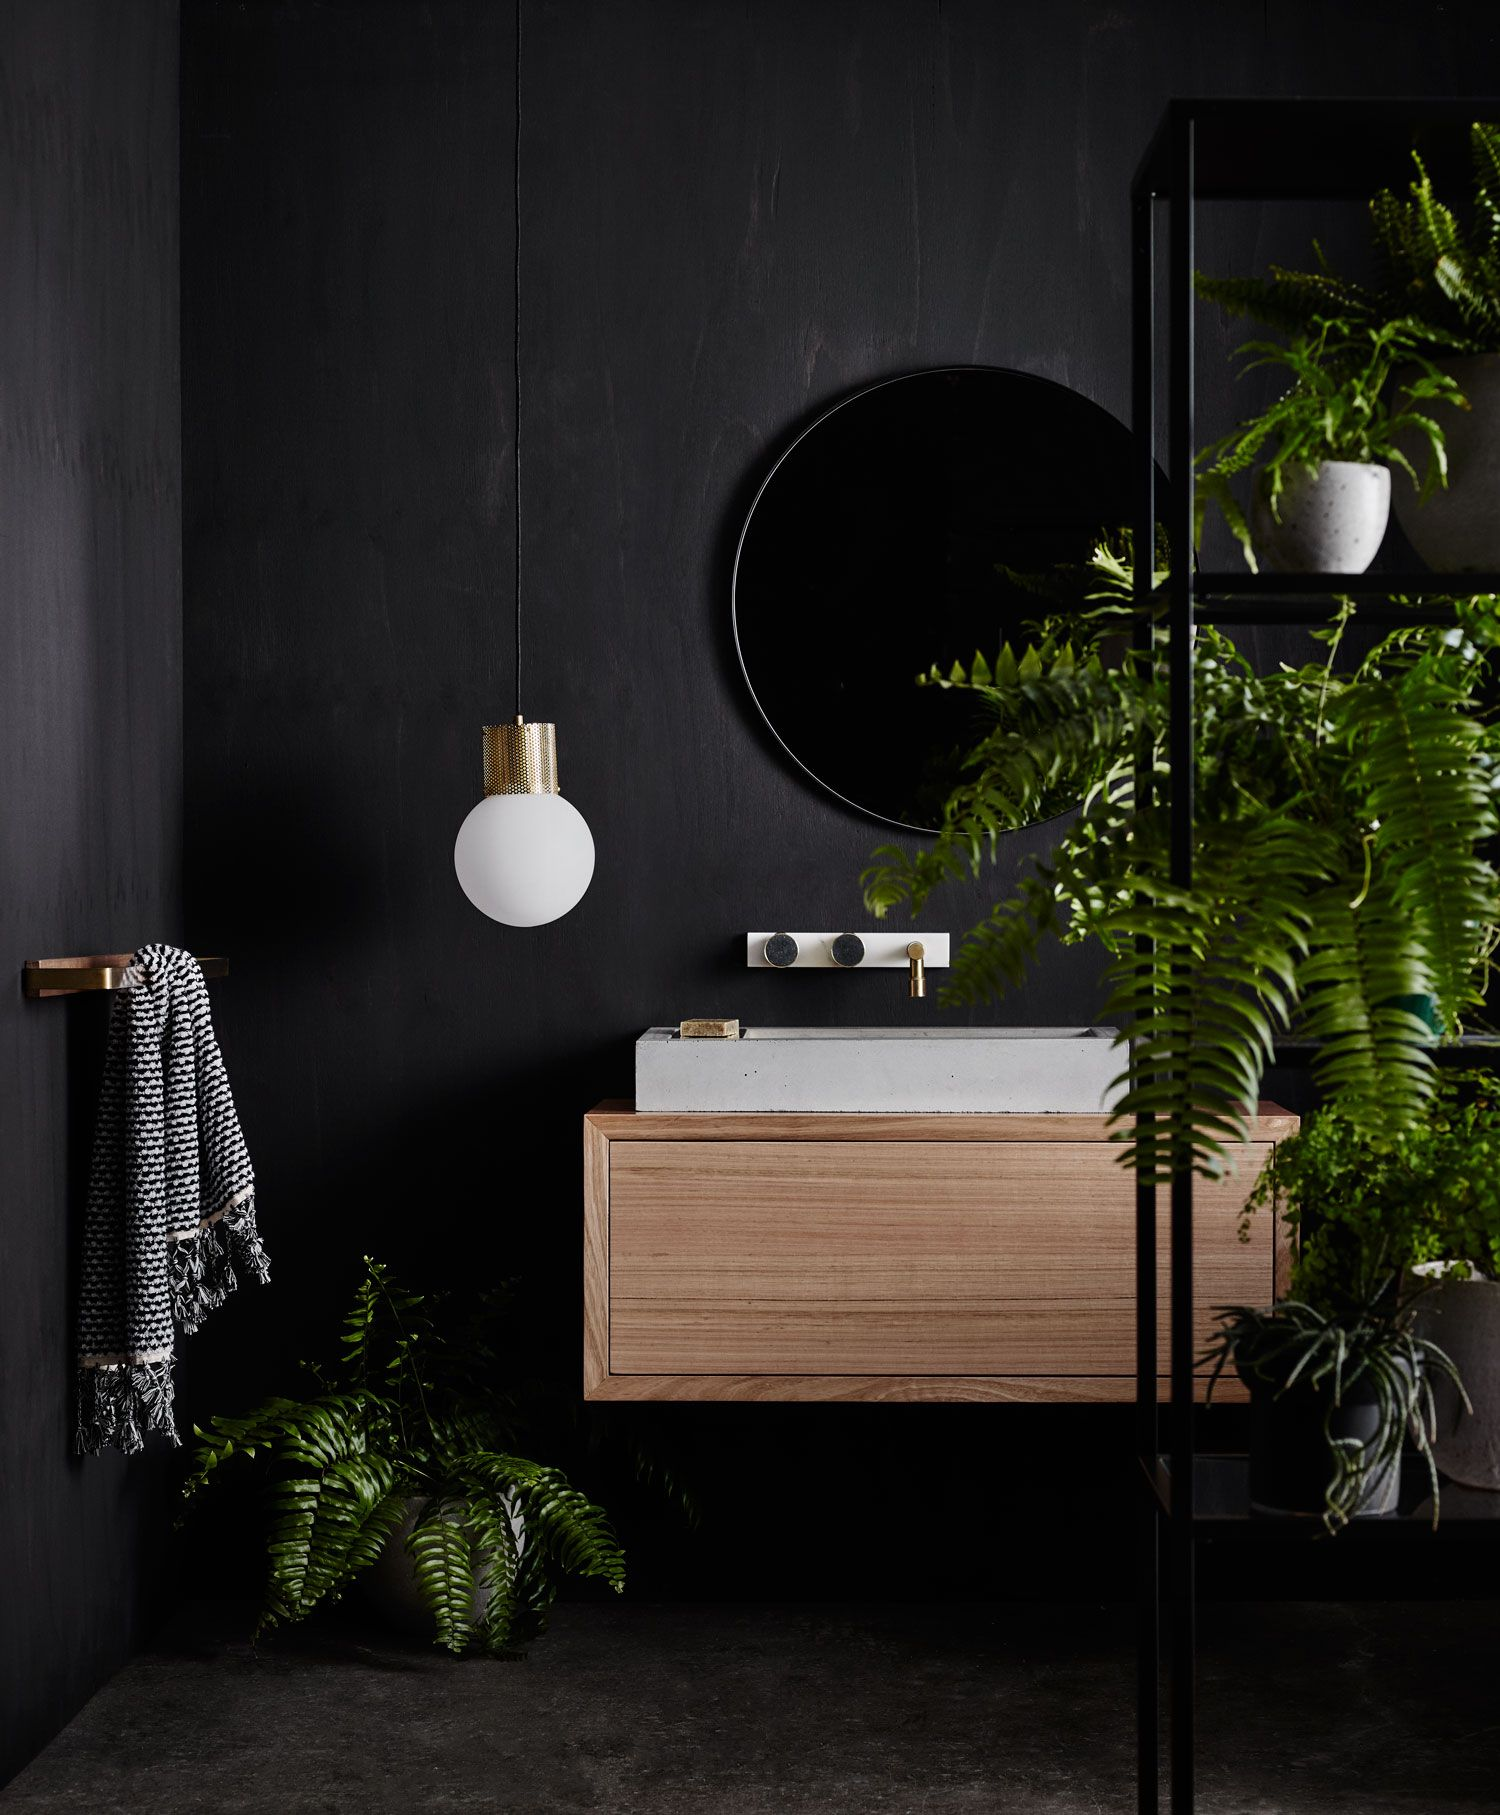 Wood Melbourne Has Launched Their Latest Collection Of Inspired Tapware,  Basins U0026 Bathroom Accessories, Unified By Tactility, Function U0026 Stylish  Aesthetic.